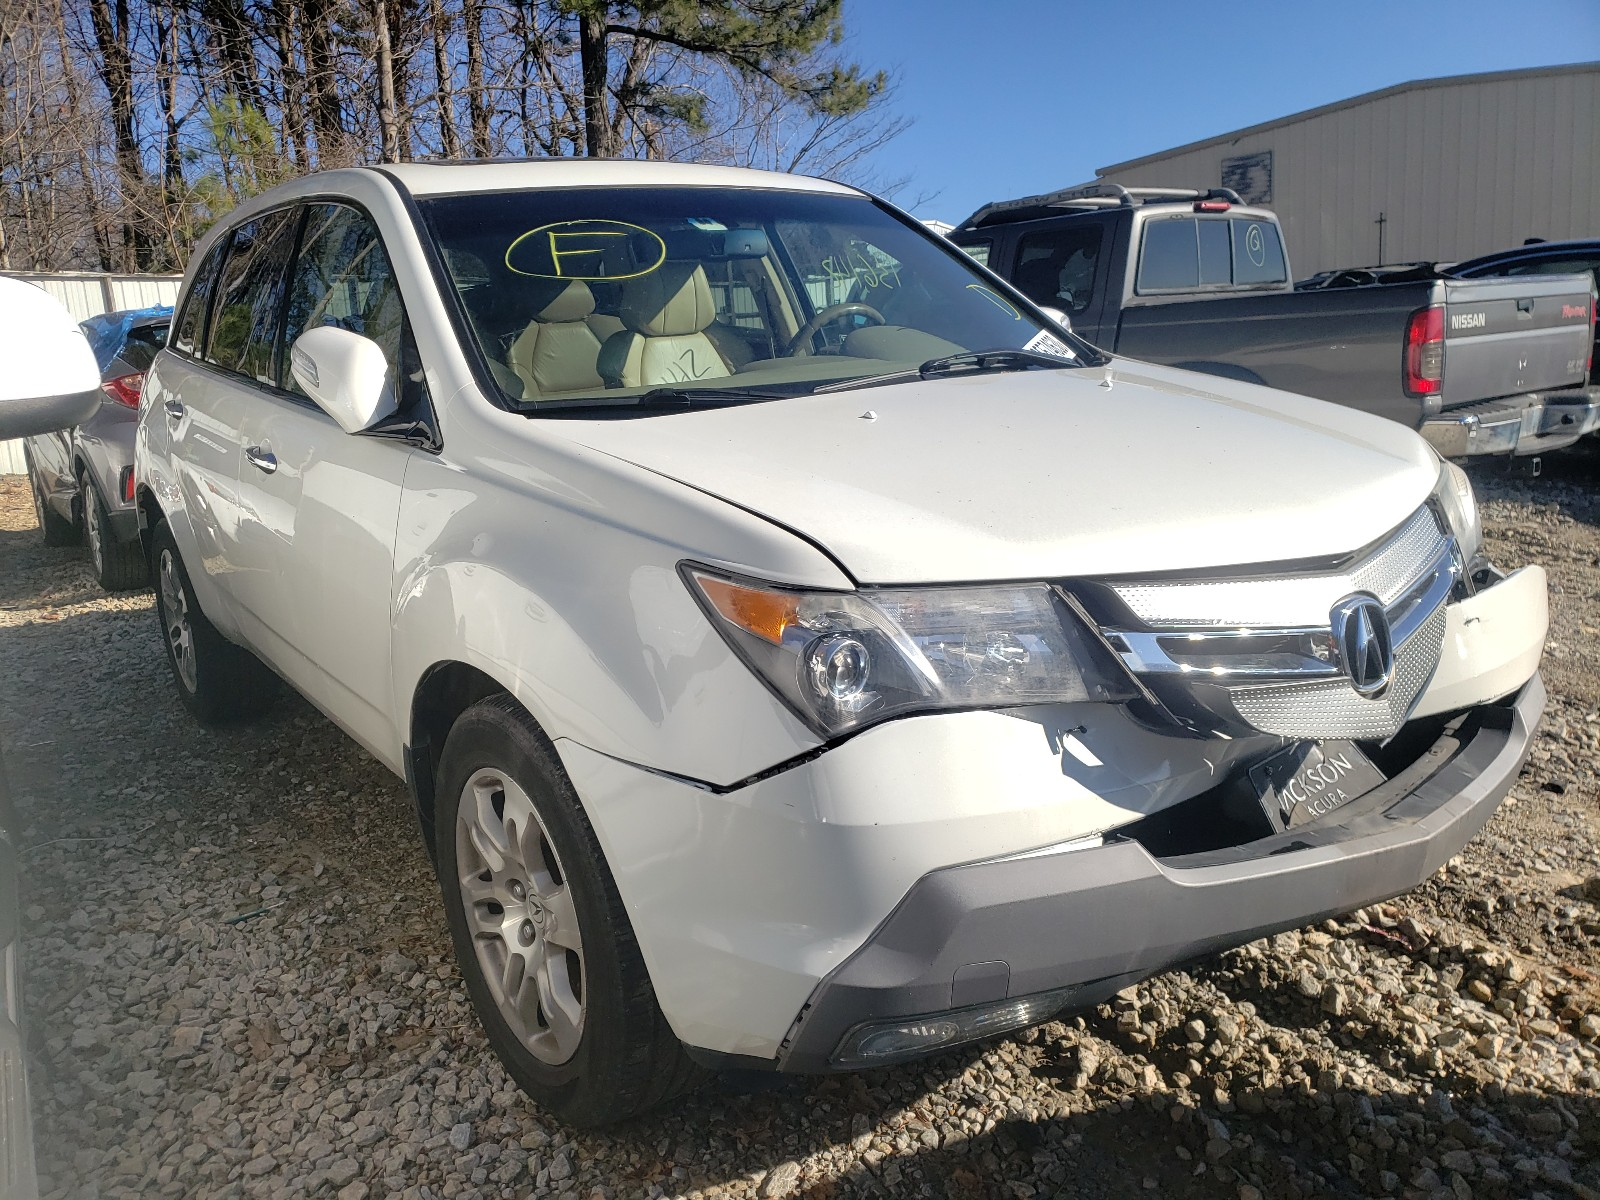 2009 Acura Mdx For Sale At Copart Gainesville Ga Lot 60574630 Salvagereseller Com